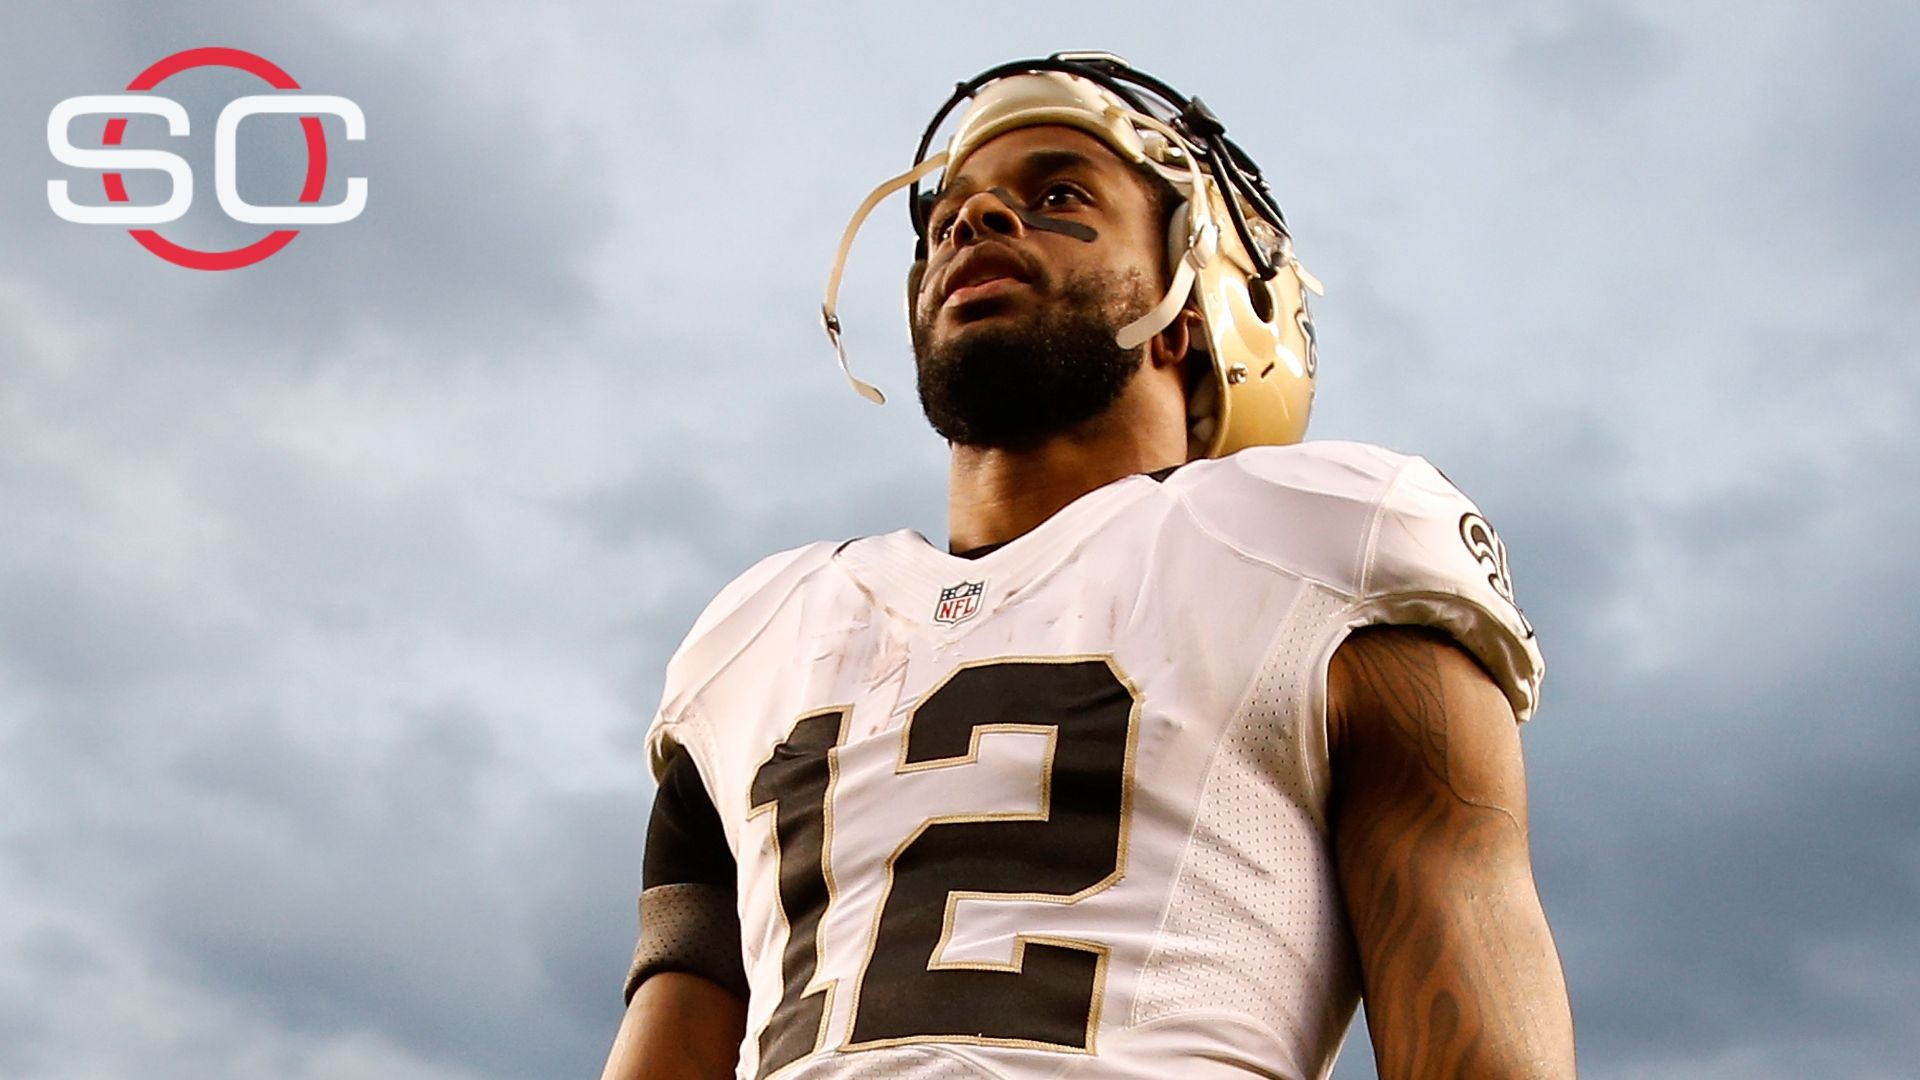 Why did the Saints release Marques Colston?